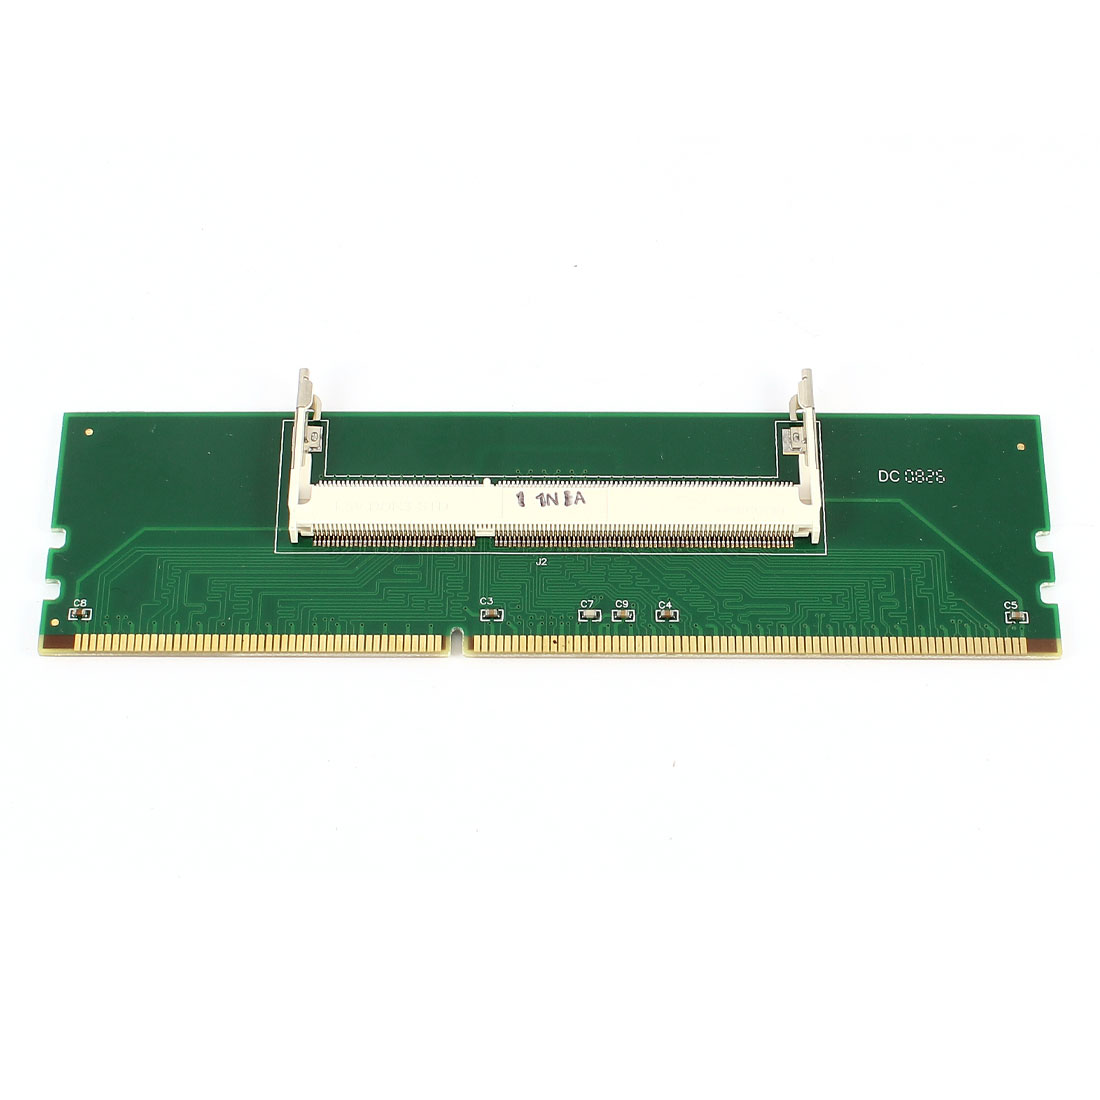 Laptop Notebook DDR3 SO-DIMM 200pin to Desktop PC LO-DIMM 240Pin RAM Adapter Card